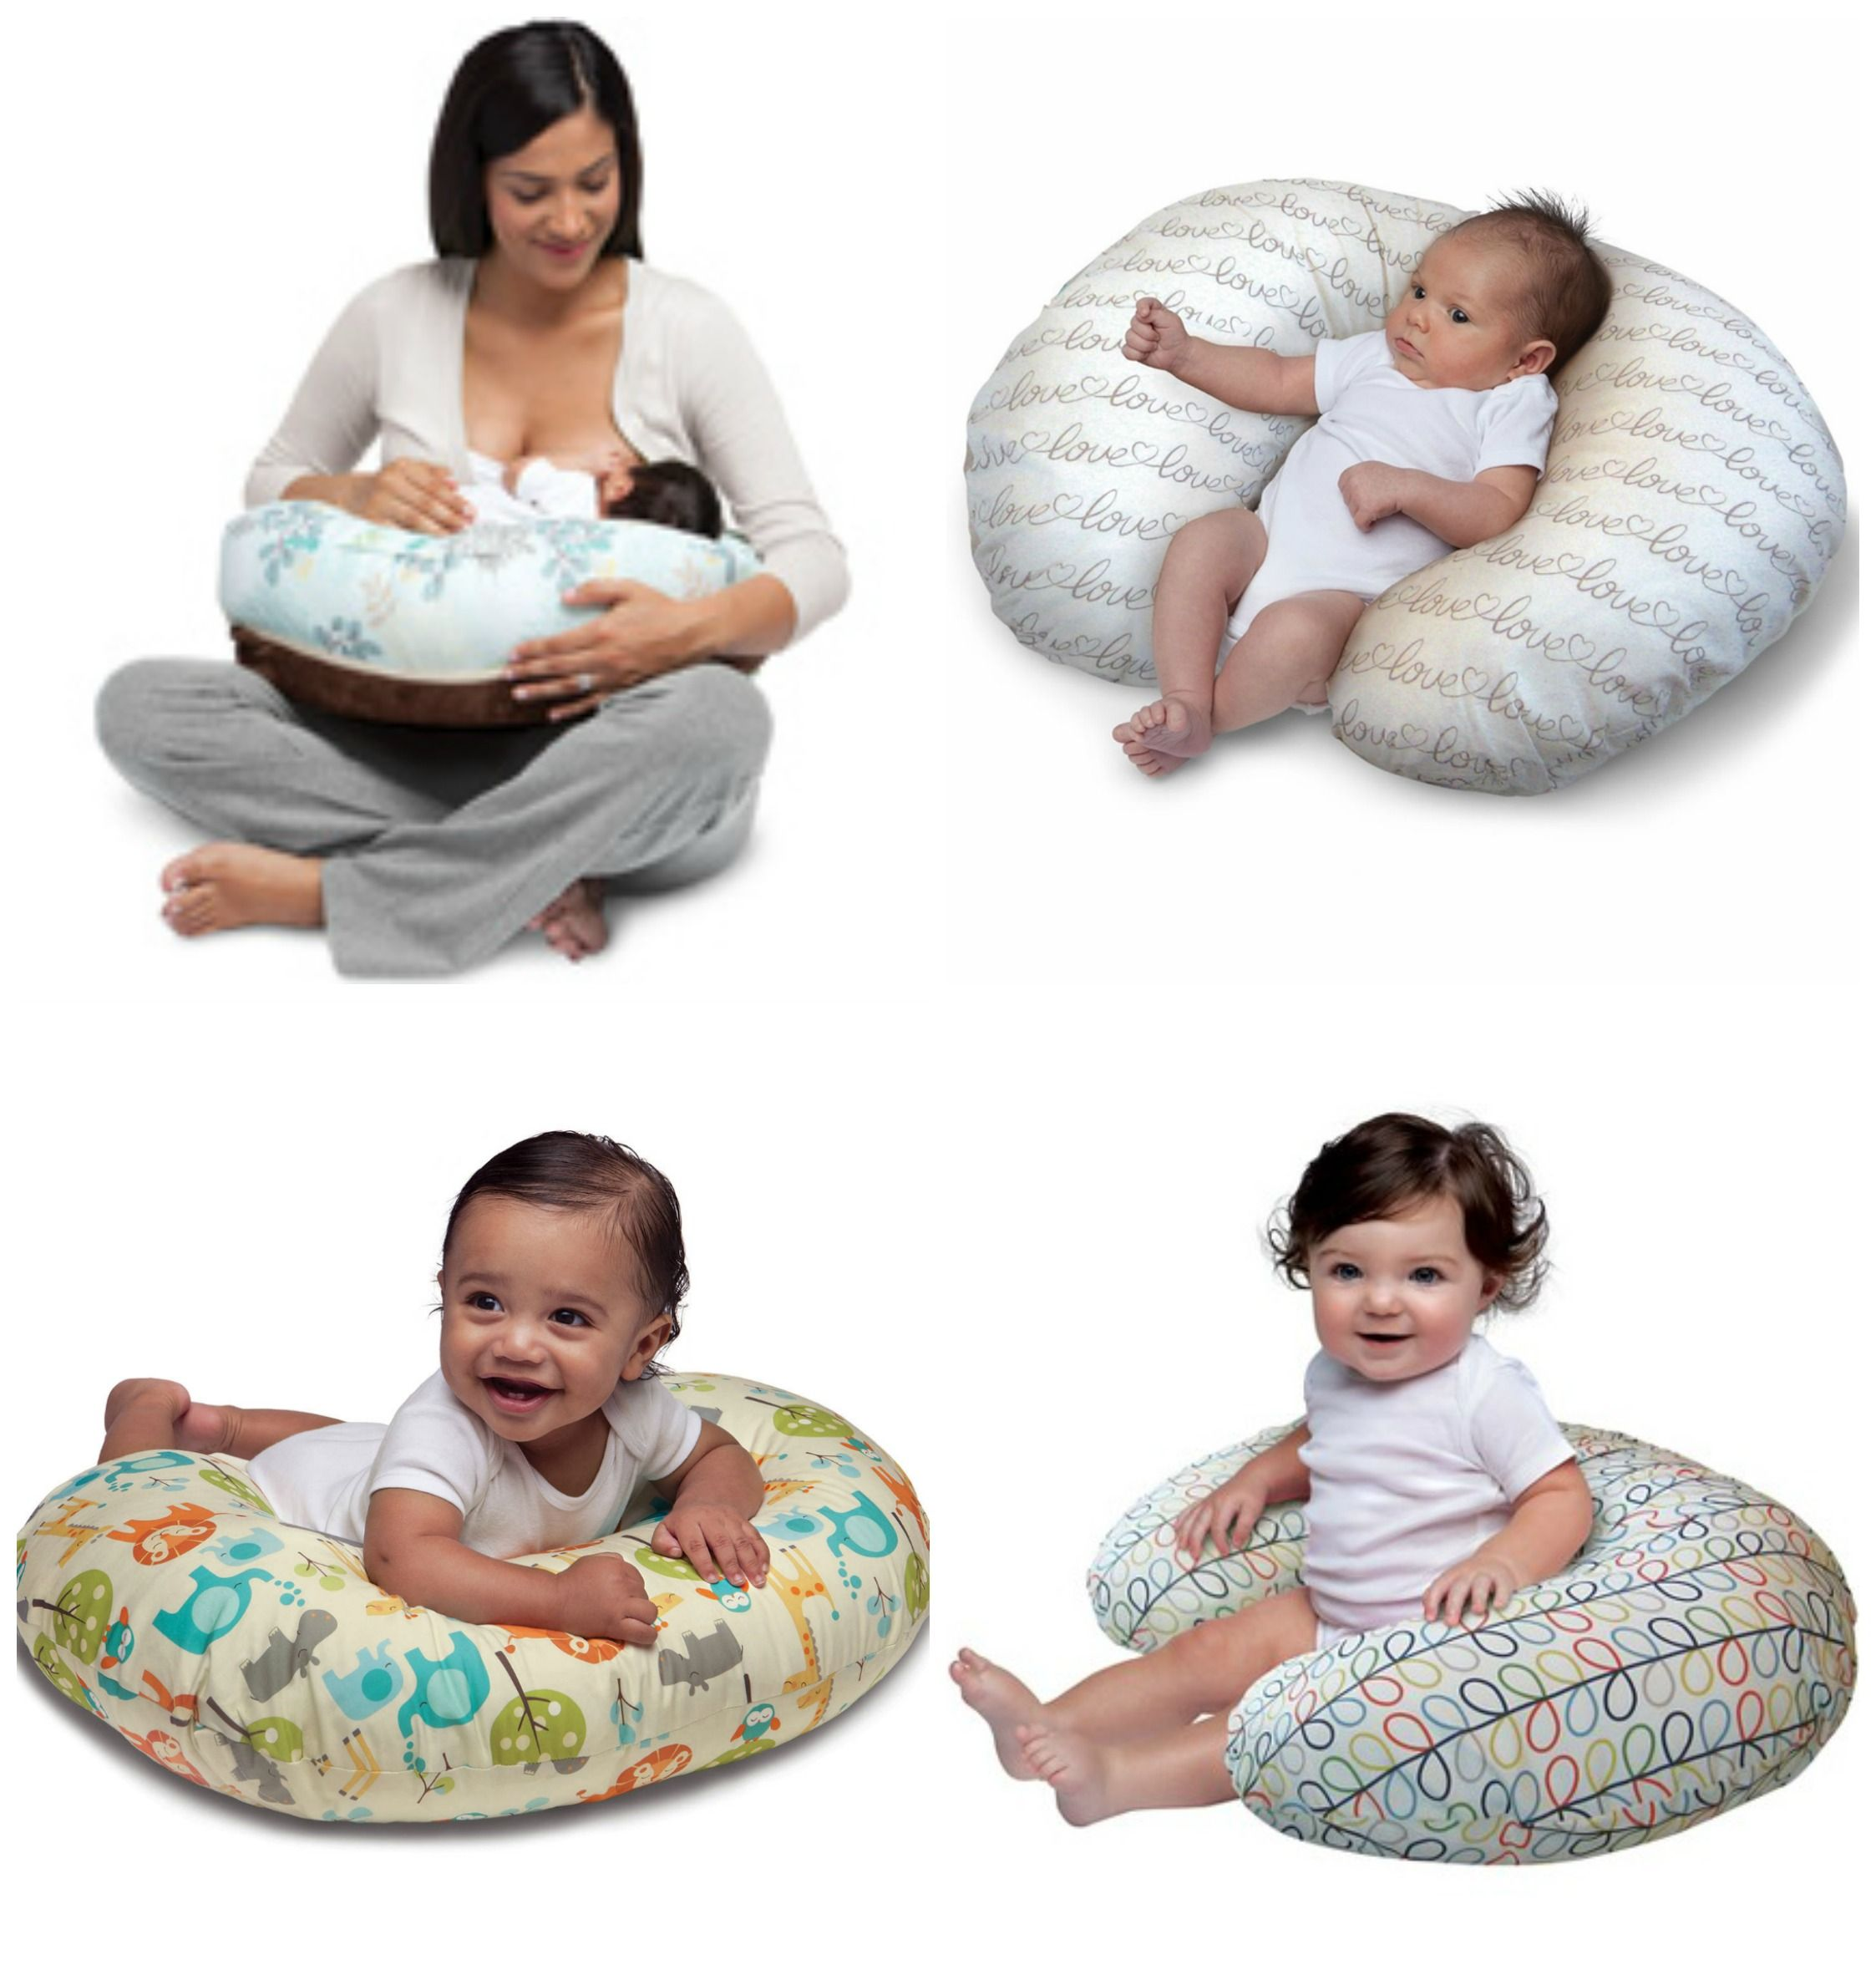 Our List Of The Best Nursing Pillows Includes The Boppy Pillow